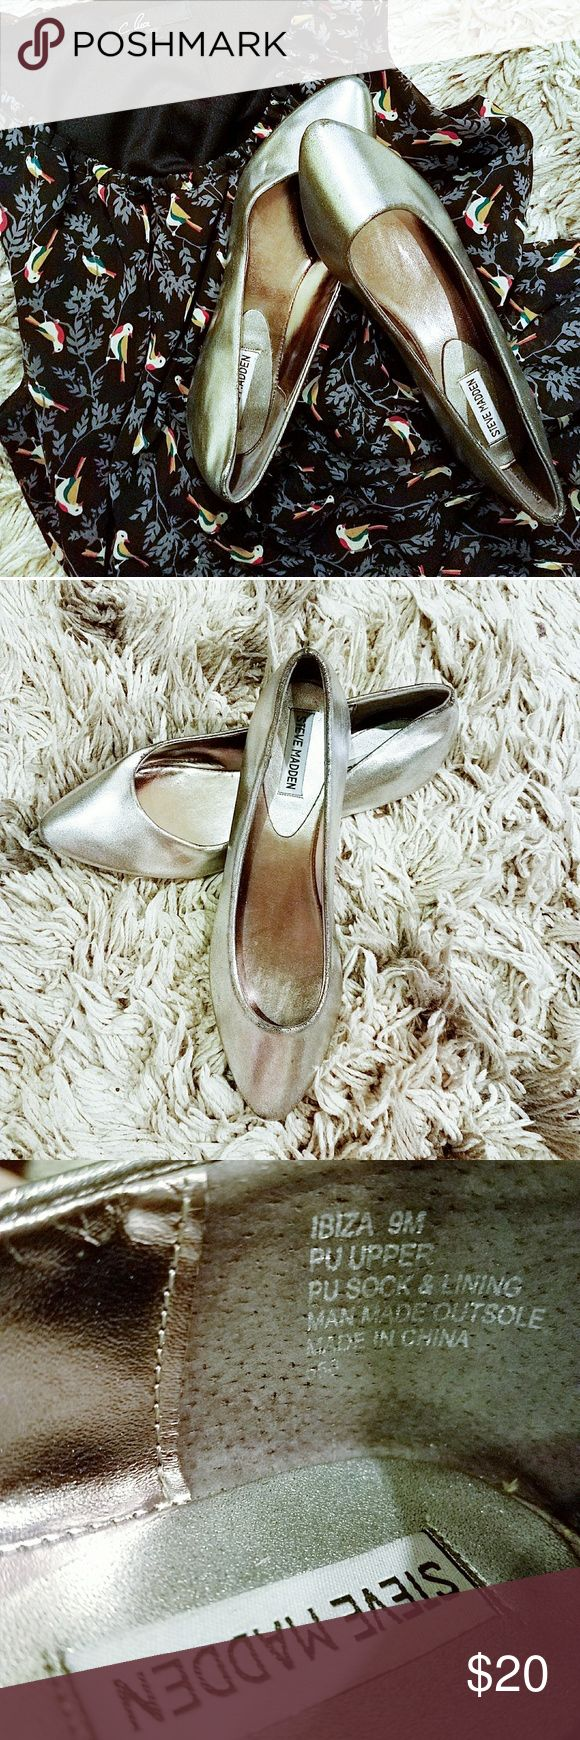 """Steve Madden - """"Ibiza"""" flats - 9 From DSW: """"Stay on point with these sophisticated pointed toe flats from Steve Madden. The Ibiza flat will keep your casual look sleek and chic.""""  Silver color, VGUC, size 9M.  🌼DRESS AVAILABLE IN SEPARATE LISTING🌻 Steve Madden Shoes Flats & Loafers"""